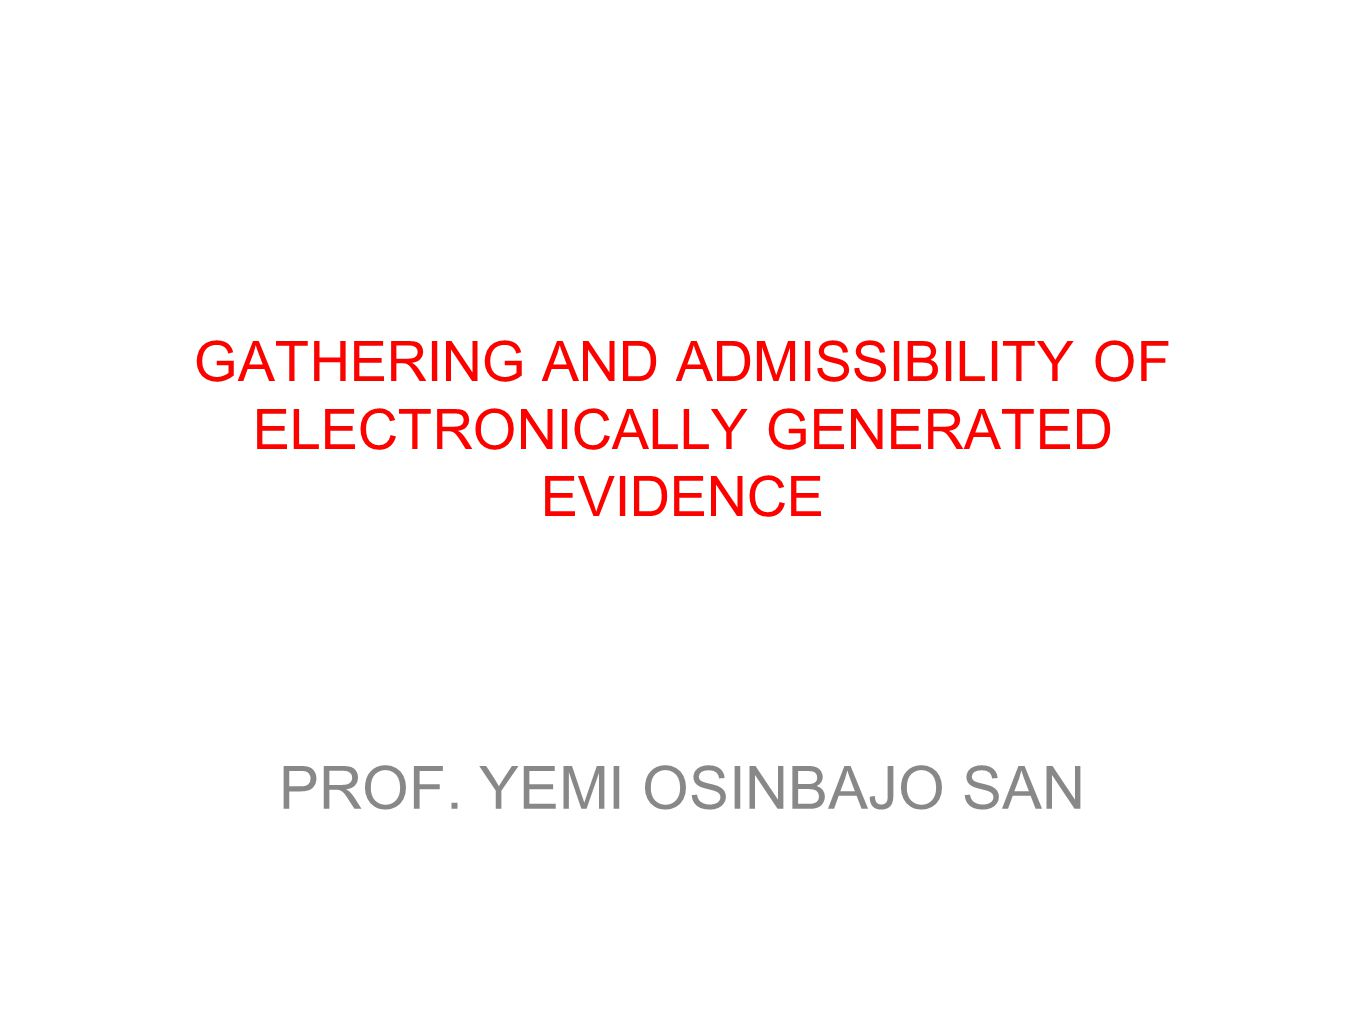 GATHERING AND ADMISSIBILITY OF ELECTRONICALLY GENERATED EVIDENCE